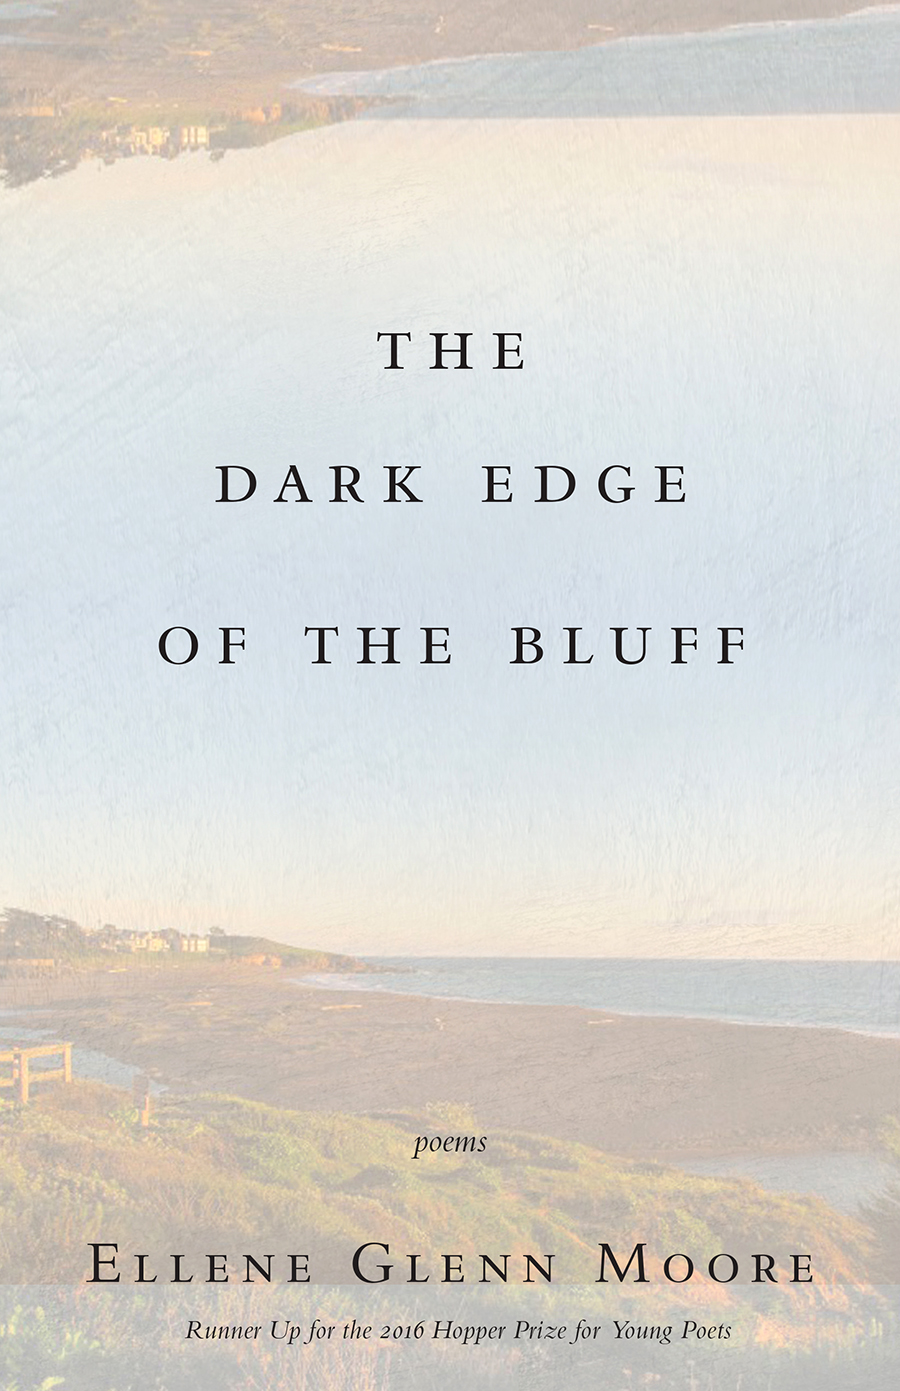 The Dark Edge of the Bluff